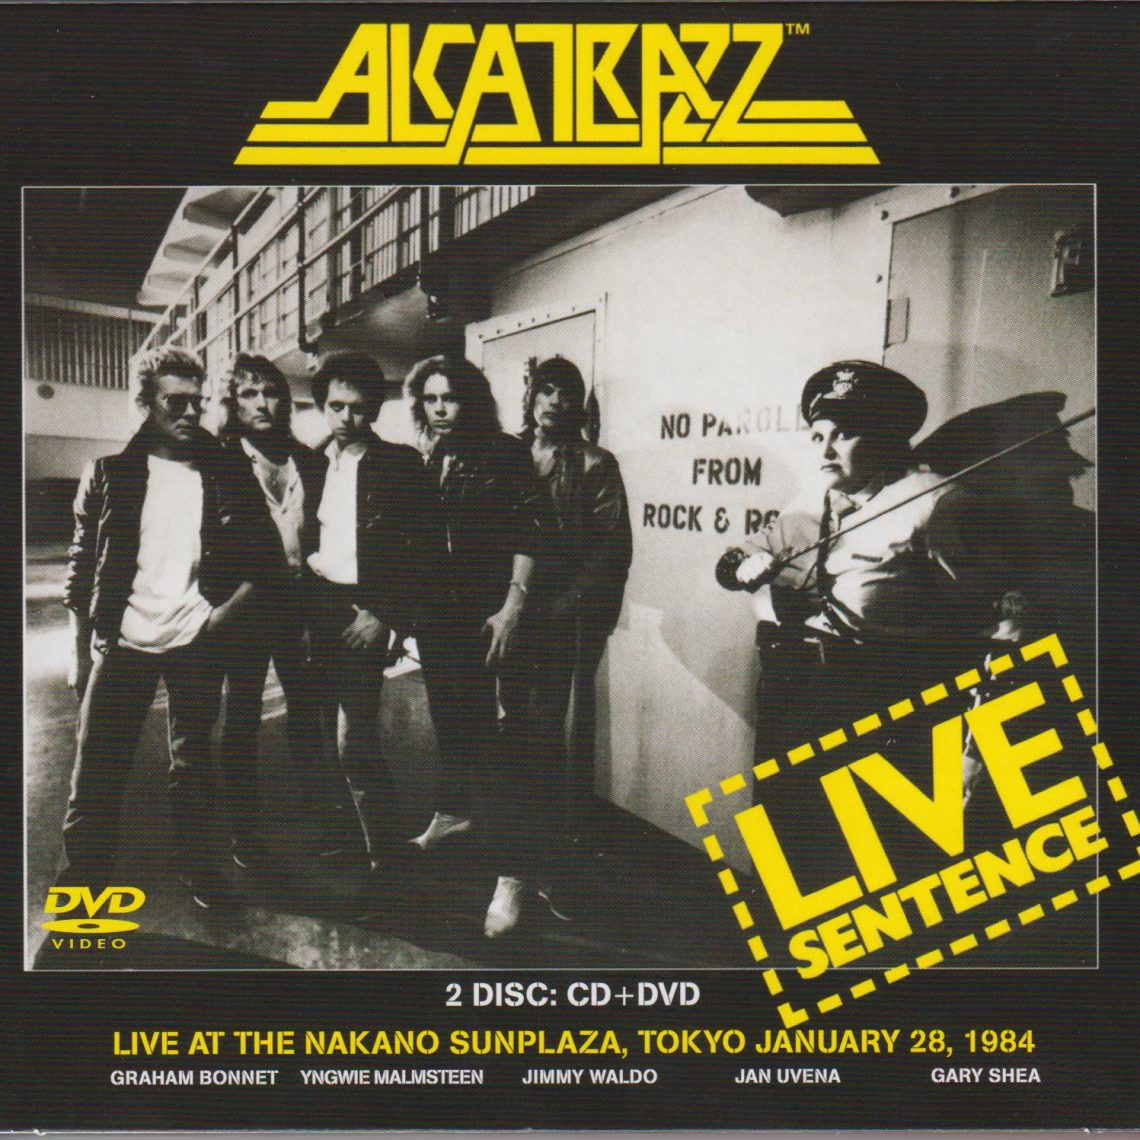 Alcatrazz – Live Sentence – Deluxe Edition CD Review